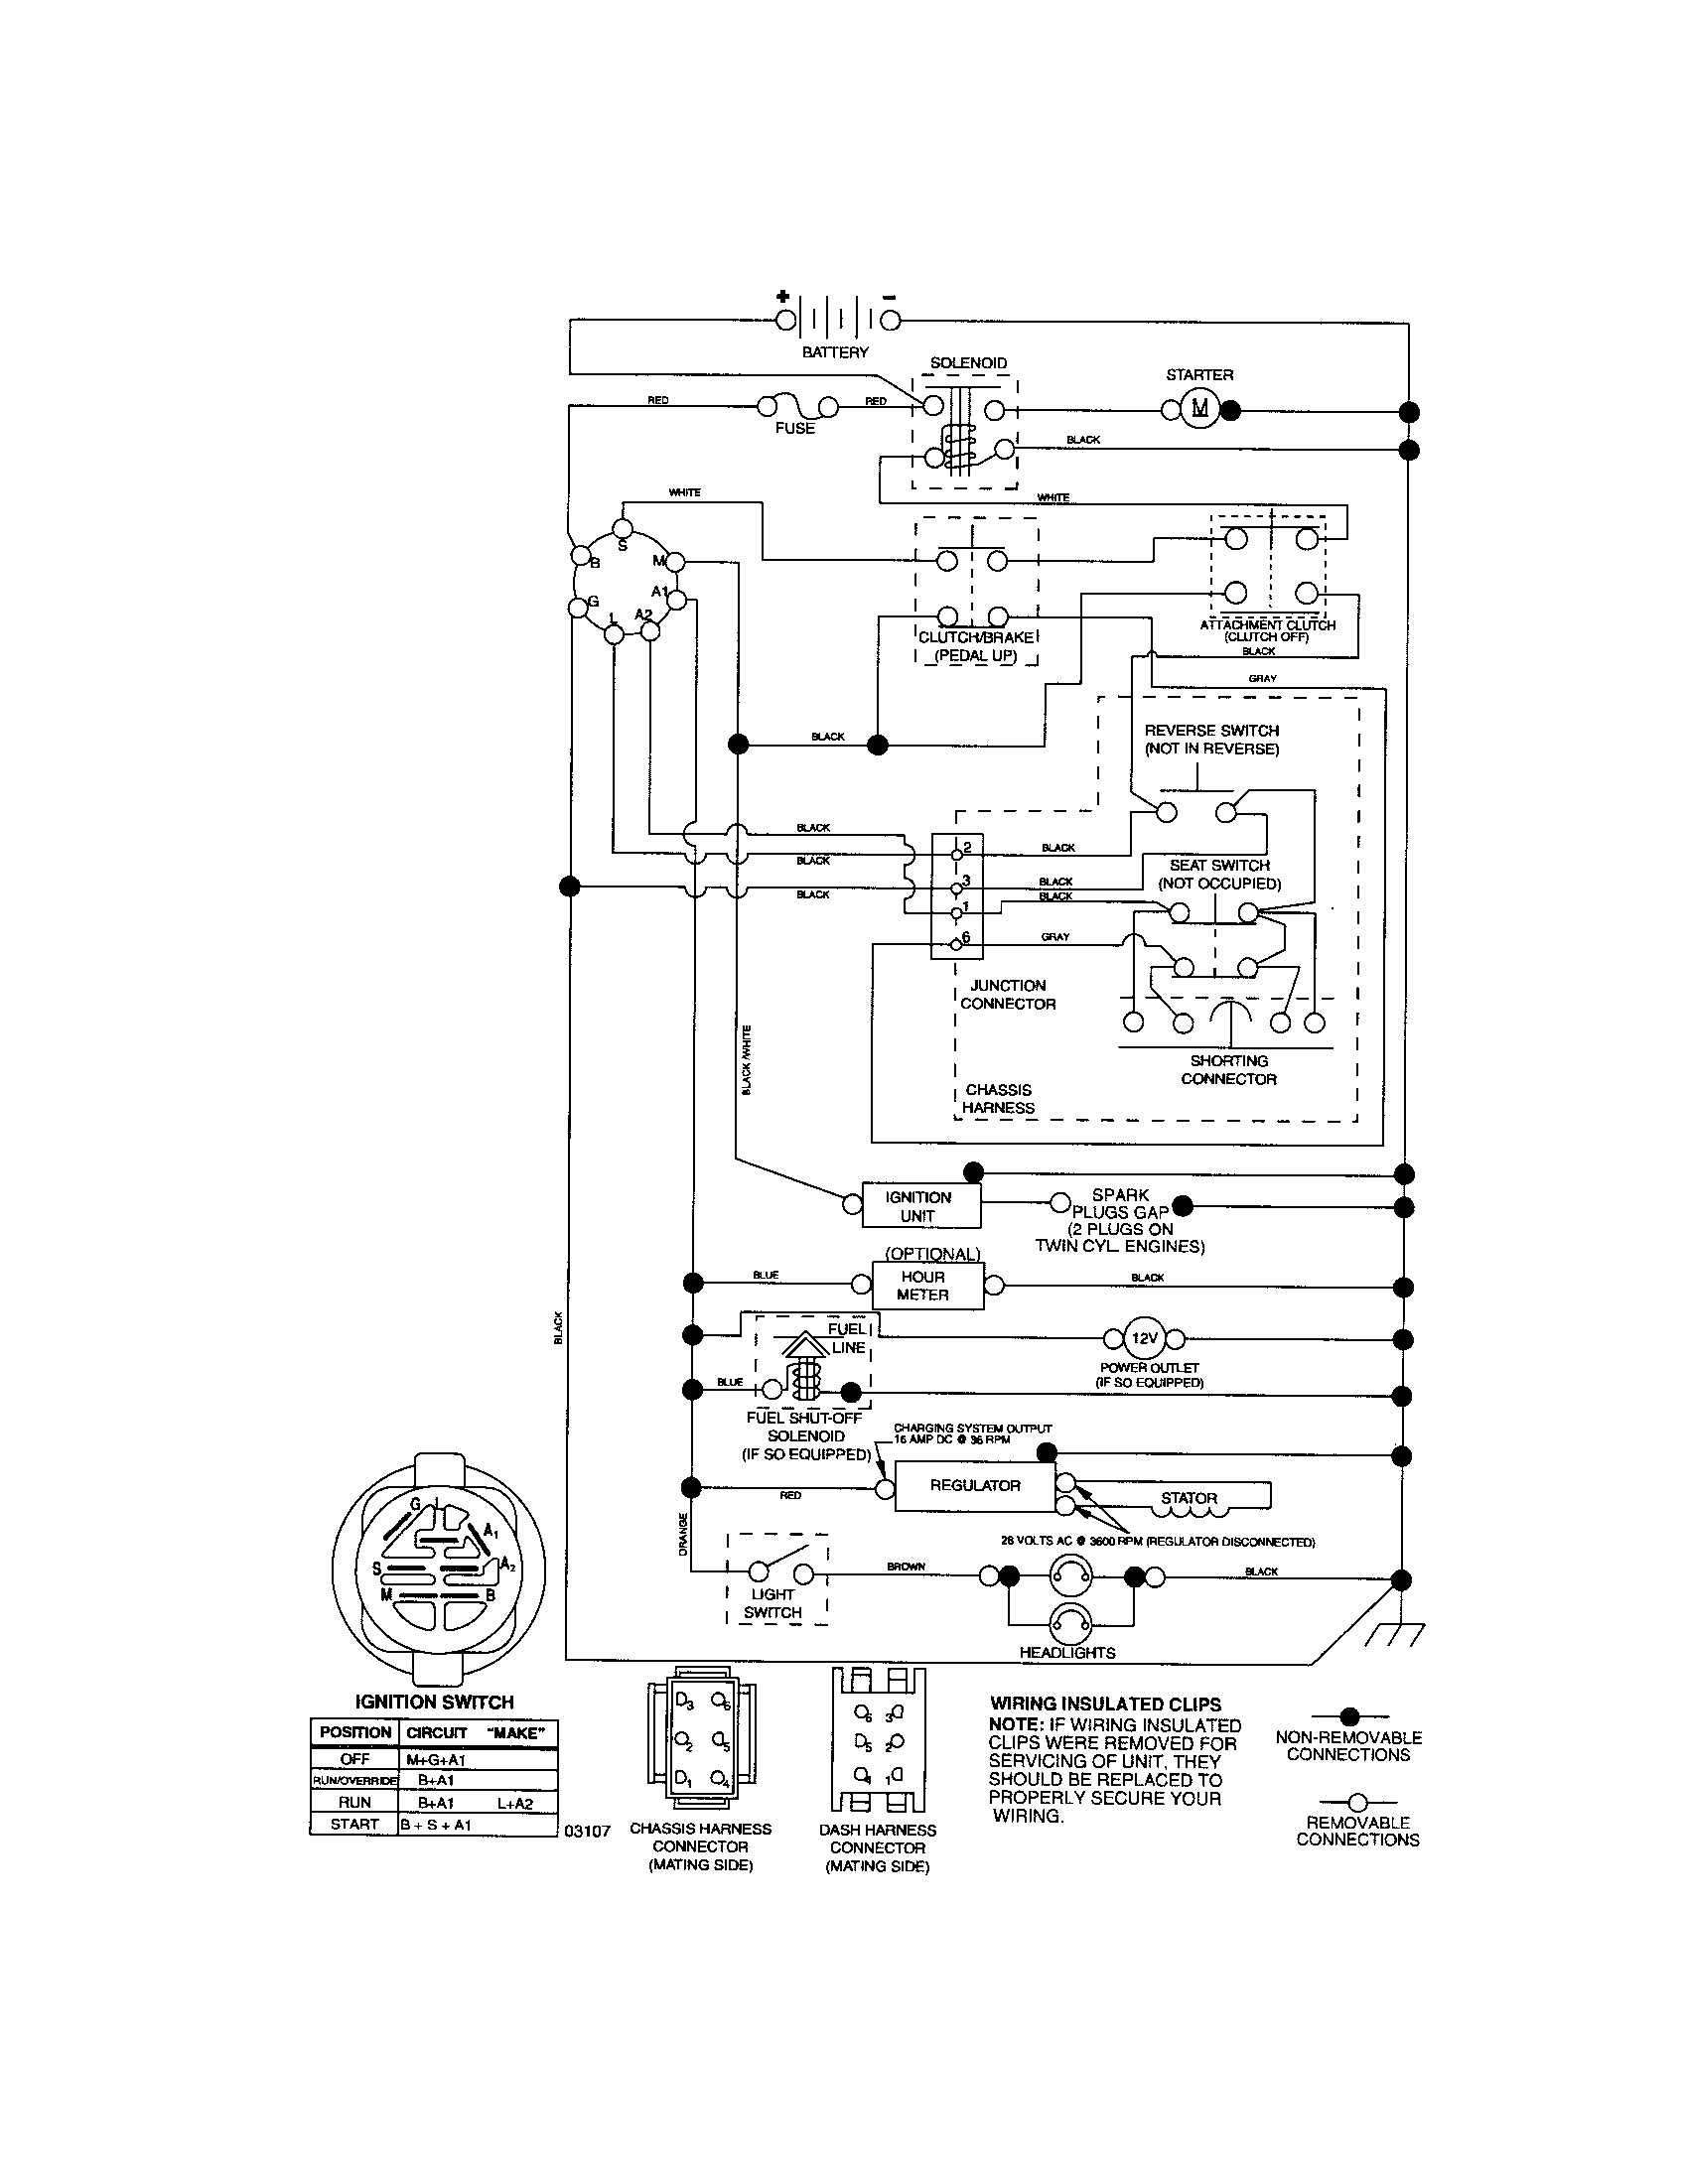 Craftsman Riding Mower Electrical Diagram | Wiring Diagram Craftsman - Riding Mower Wiring Diagram